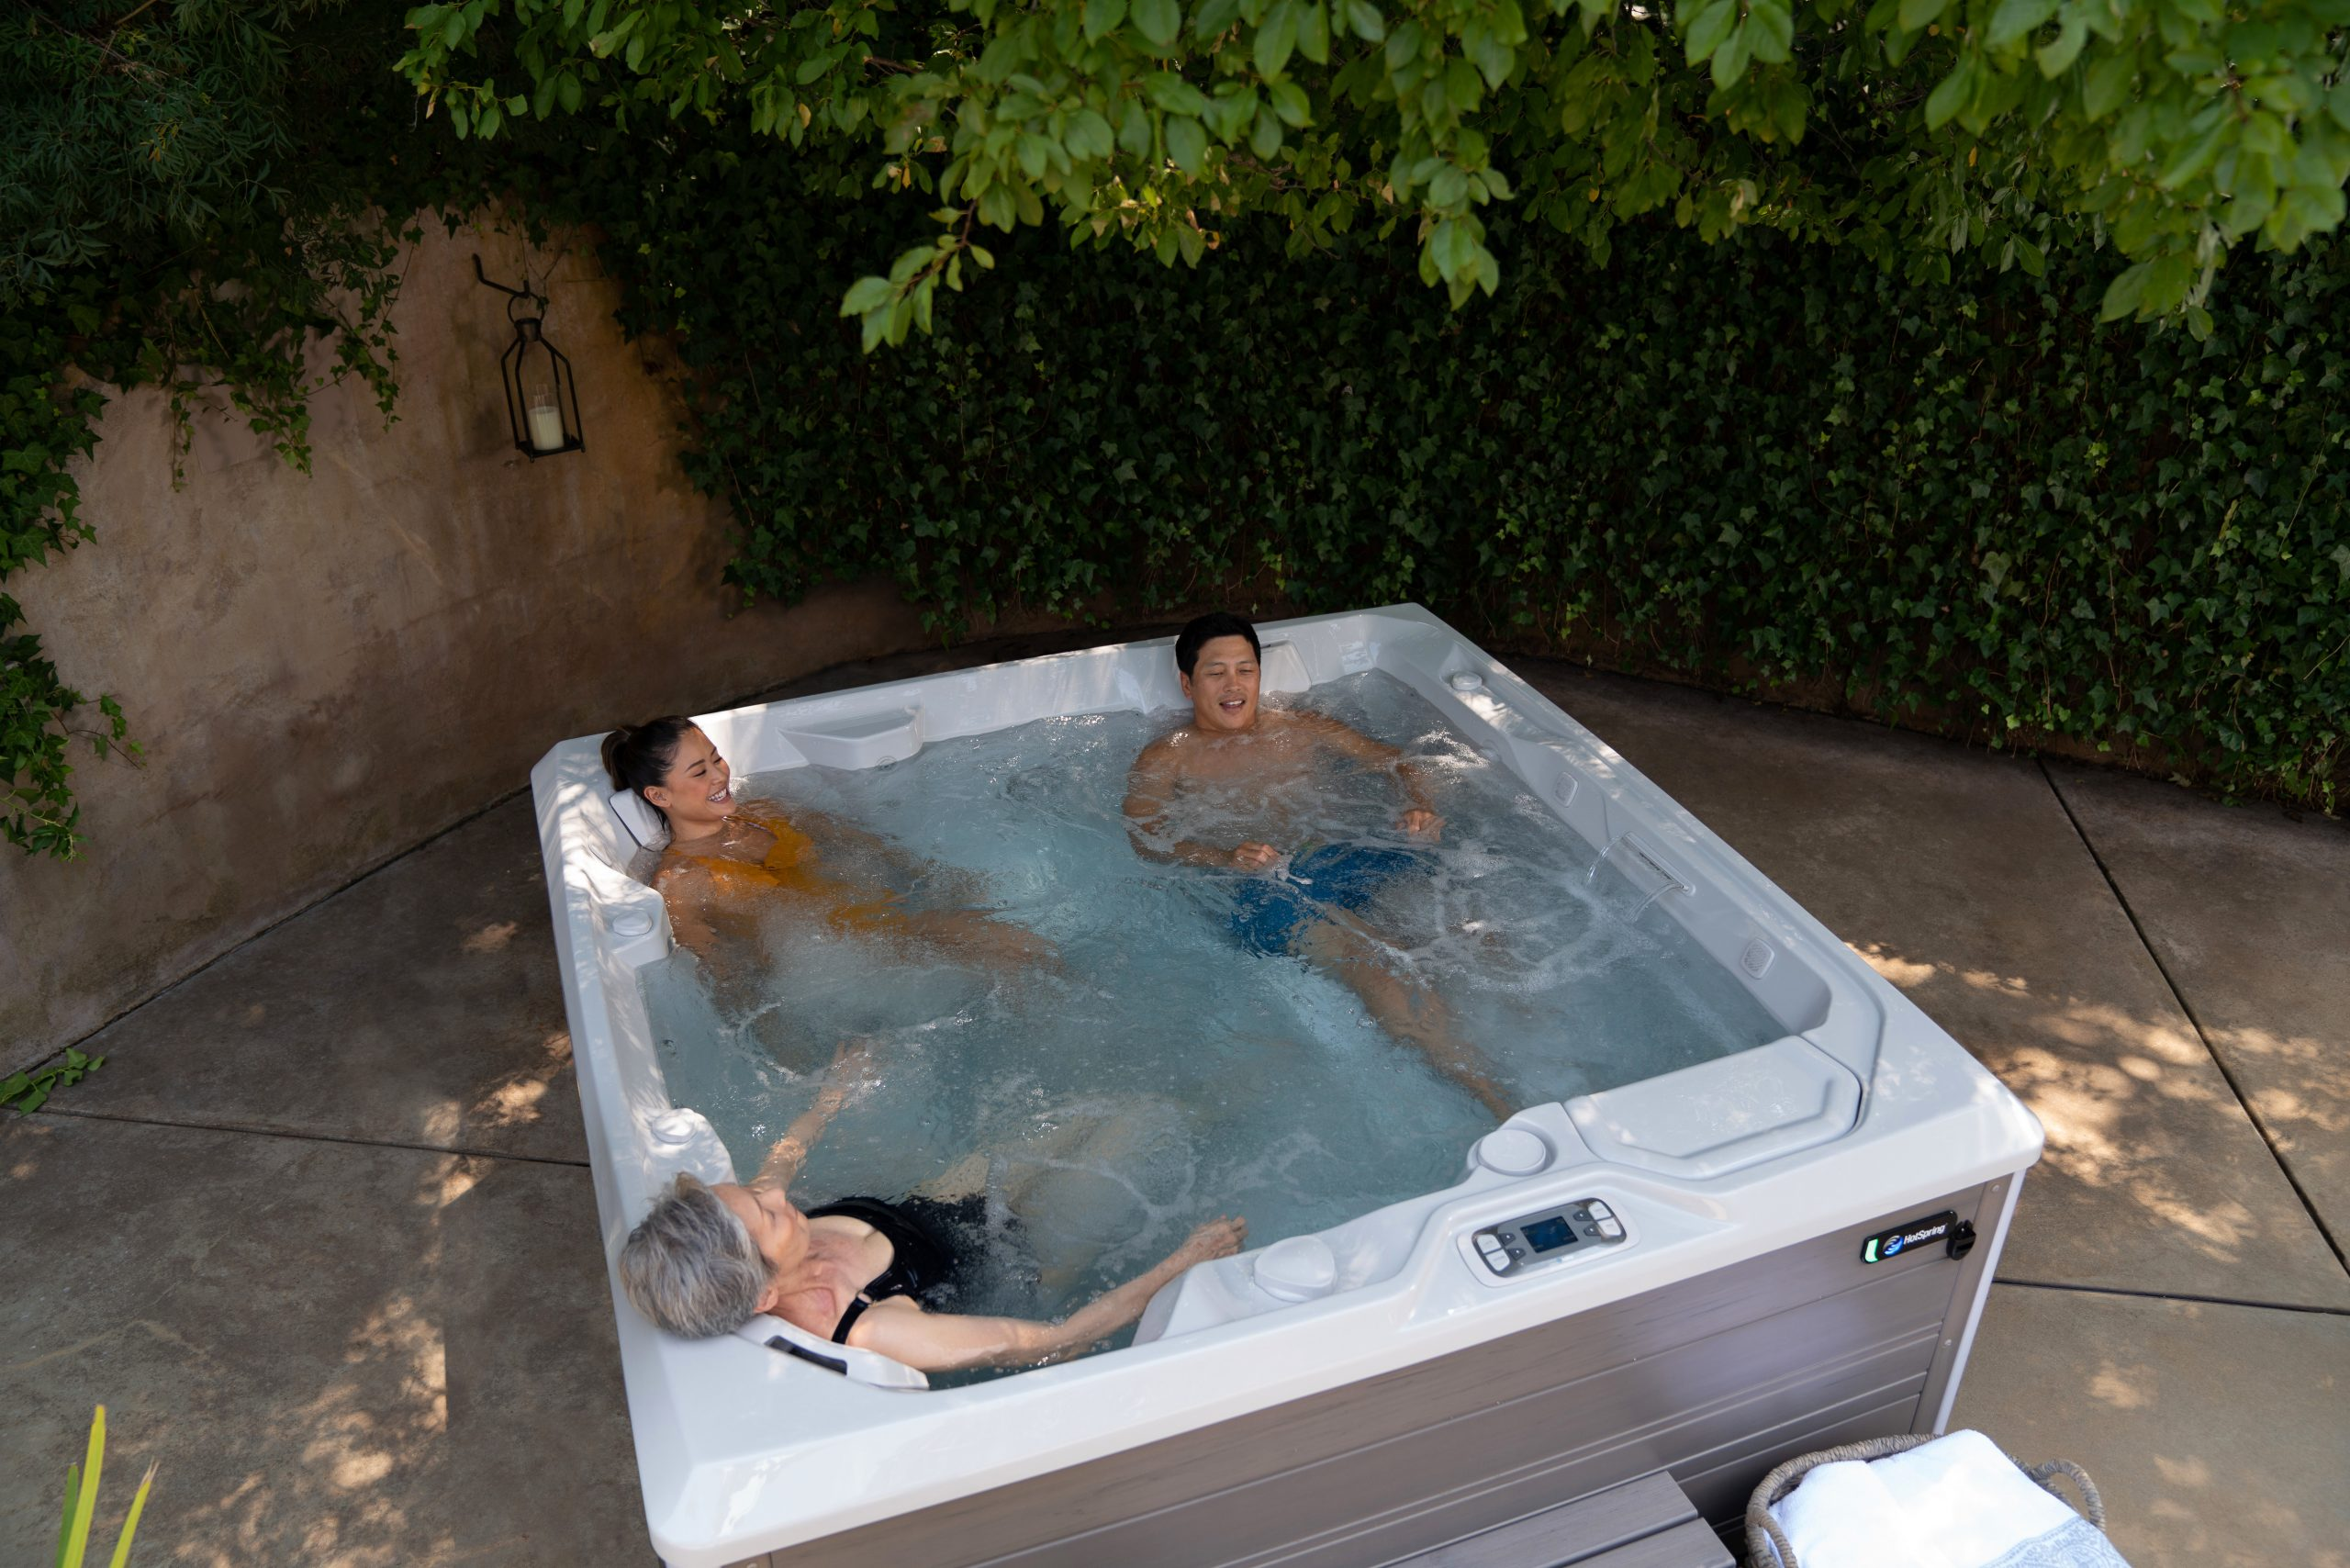 How Long Should You Stay In A Hot Tub?